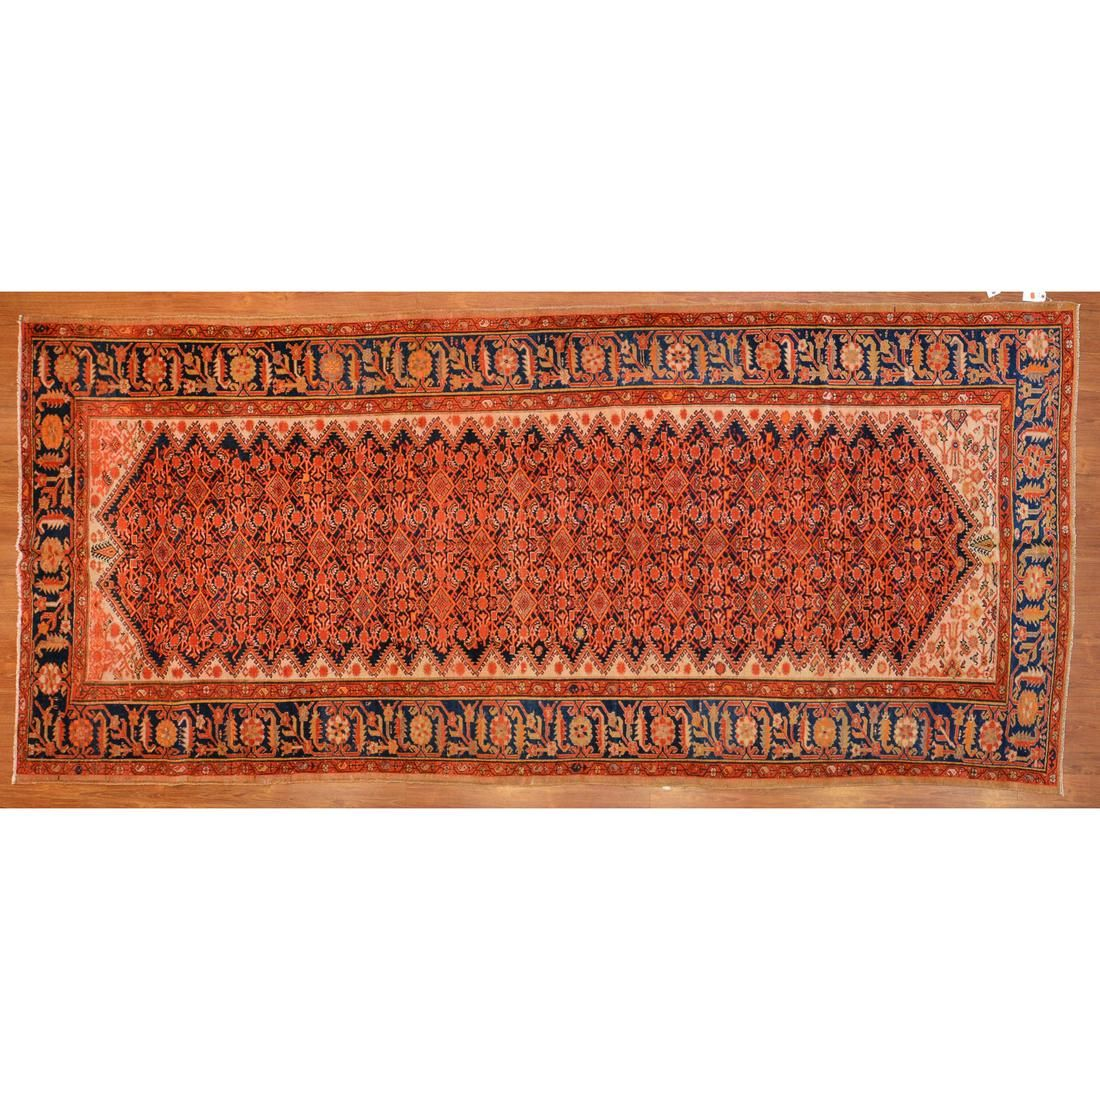 Antique Malayer Rug, Persia, 5.10 x 12.11